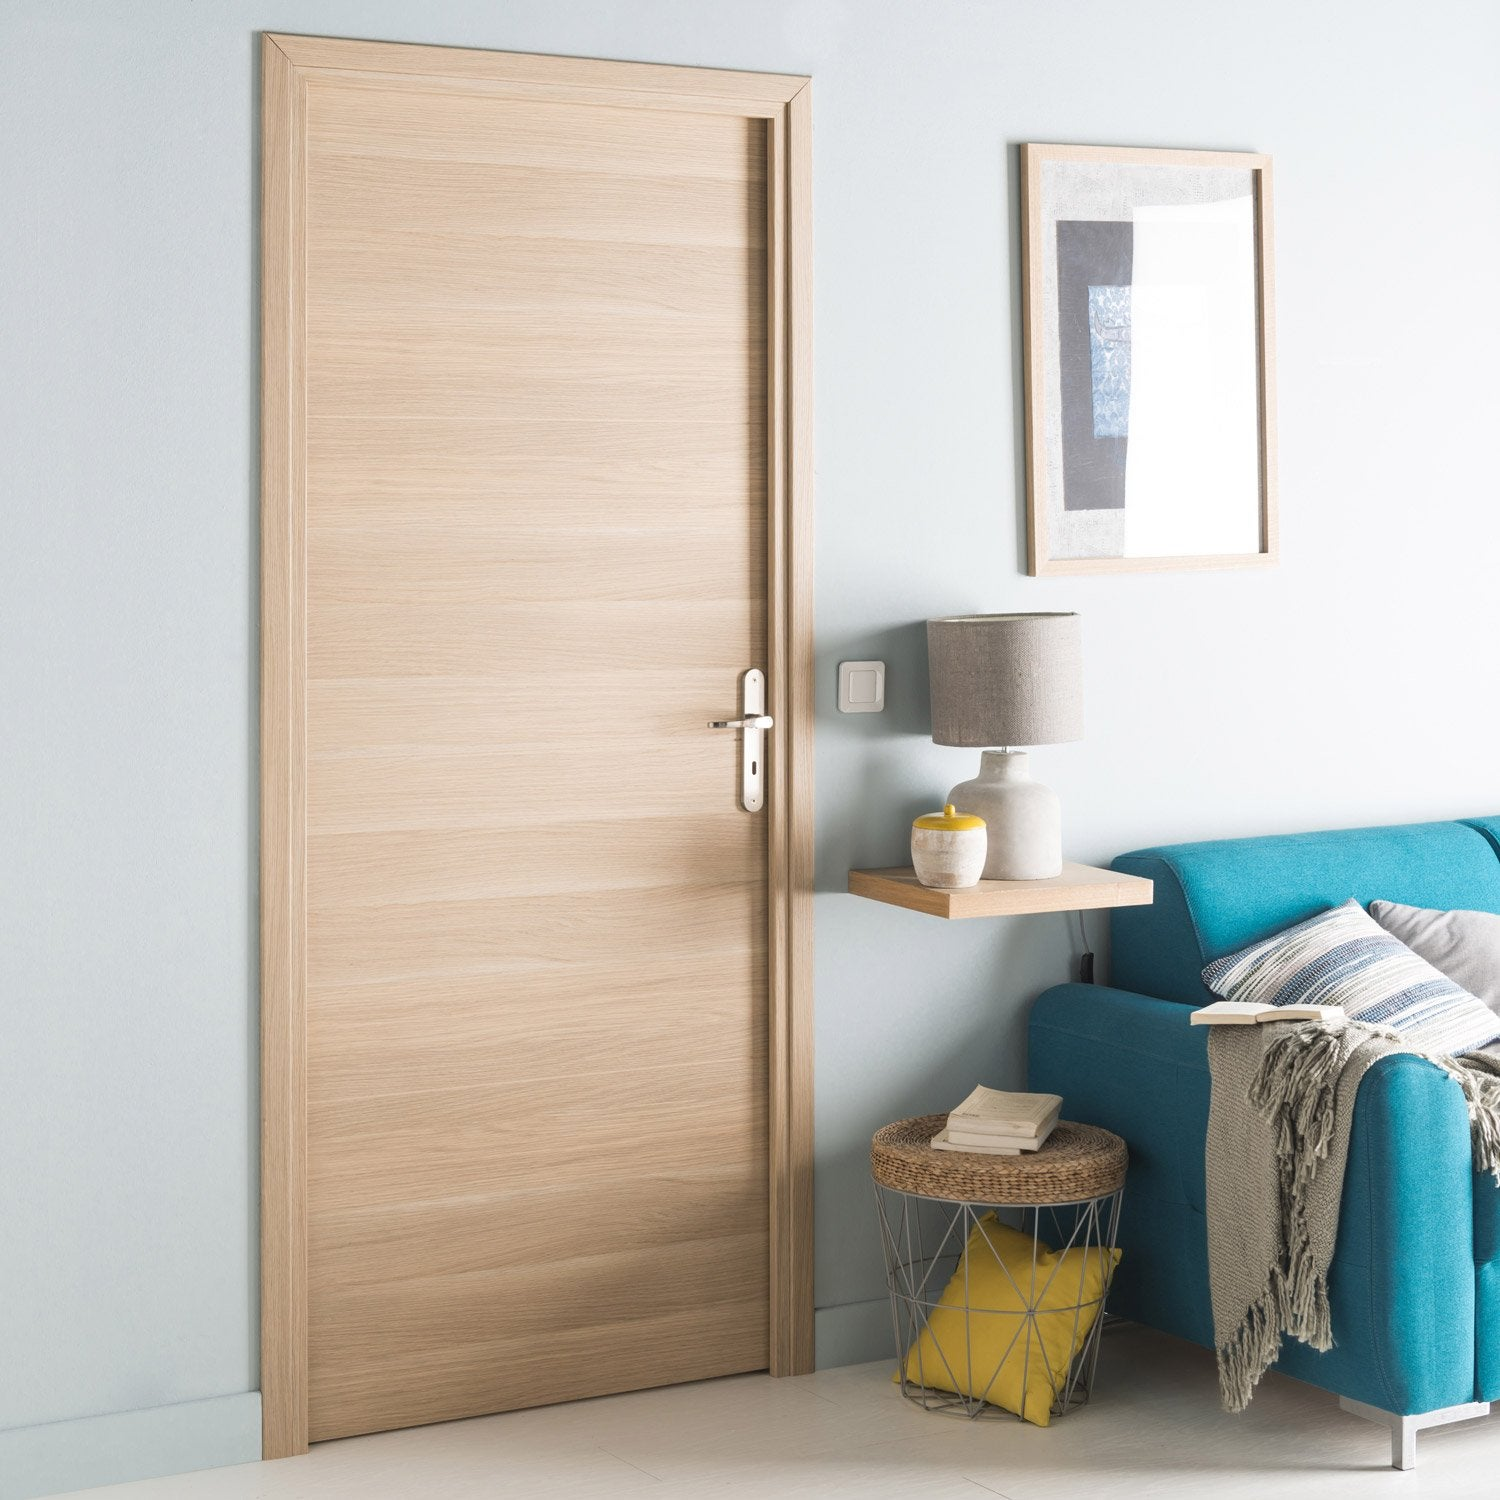 Bloc porte rev tu madrid 2 artens x cm for Interieur 83